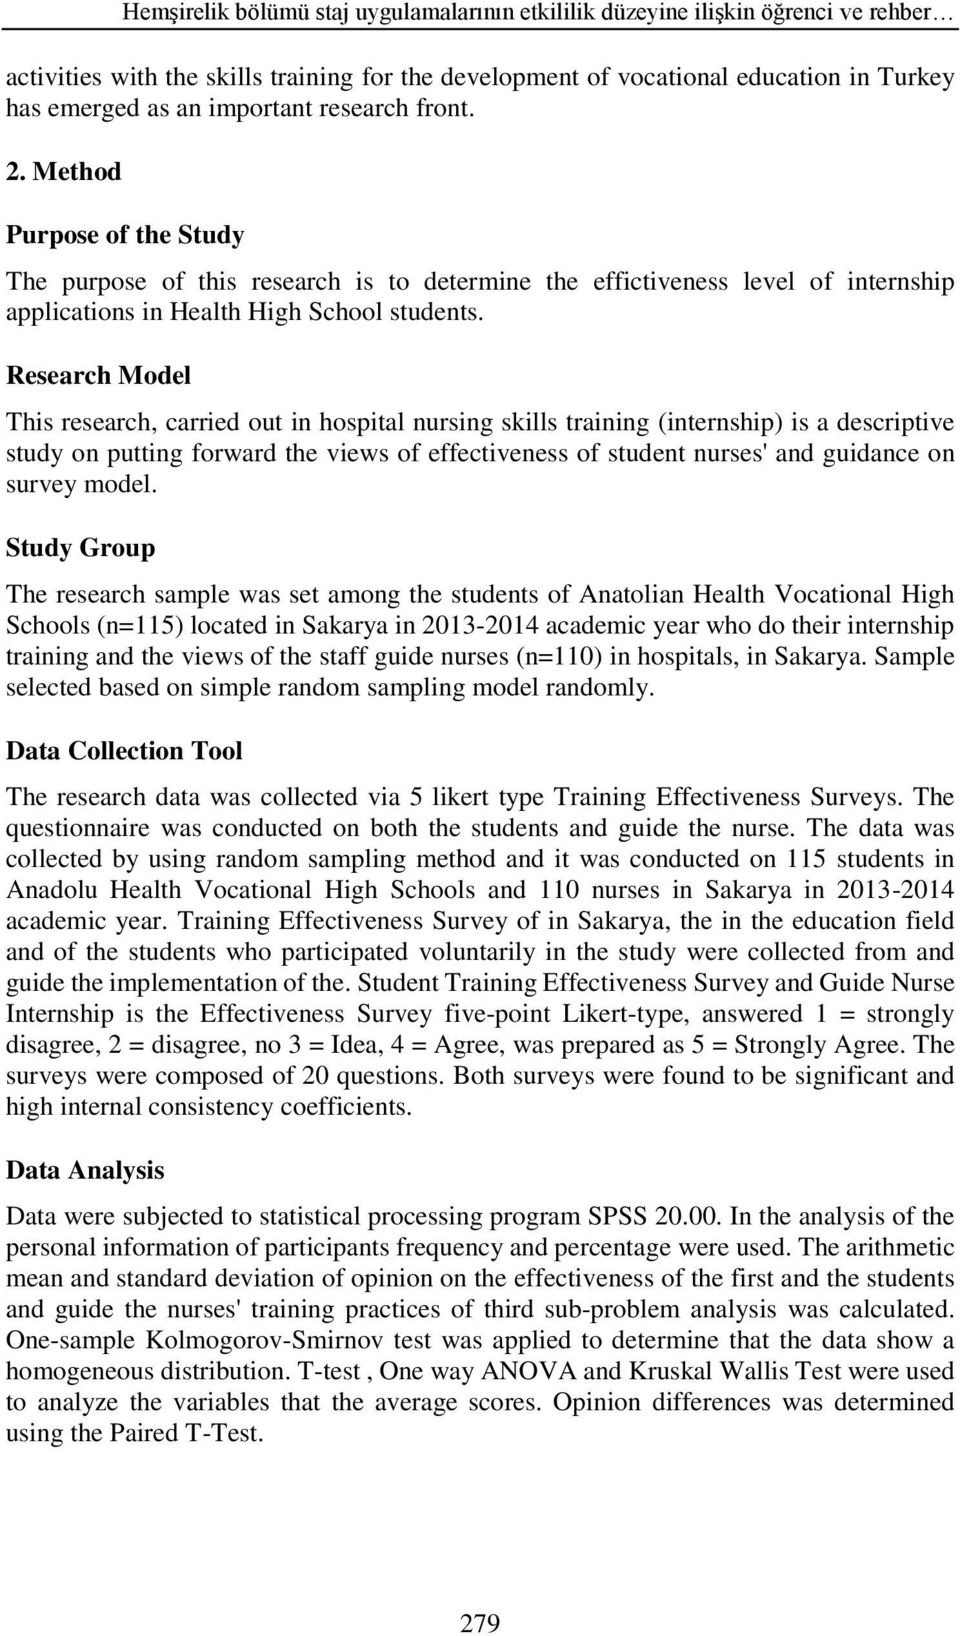 Research Model This research, carried out in hospital nursing skills training (internship) is a descriptive study on putting forward the views of effectiveness of student nurses' and guidance on